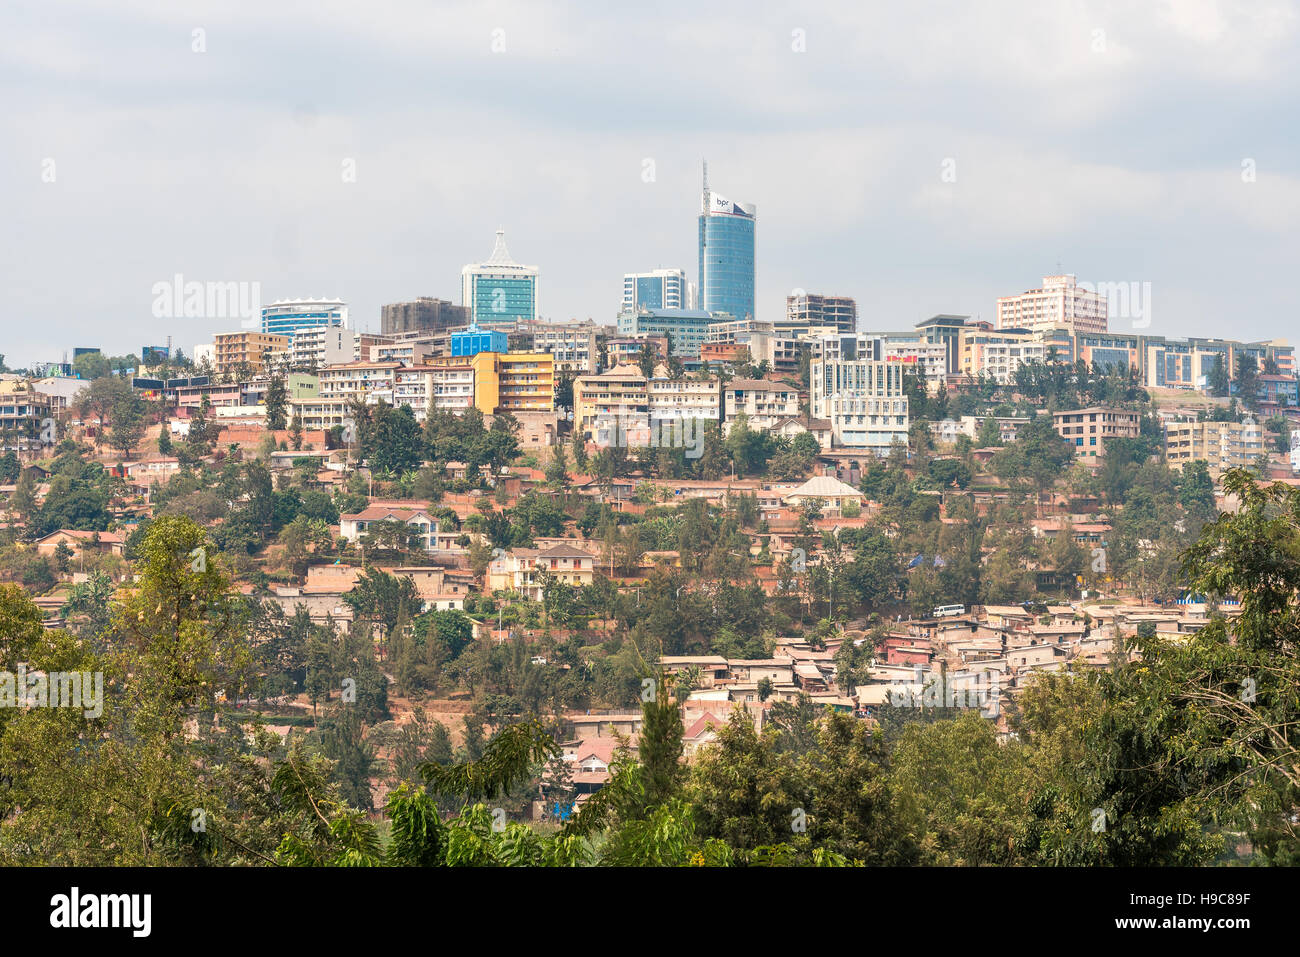 Bird's eye view of the buildings of downtown Kigali - Stock Image